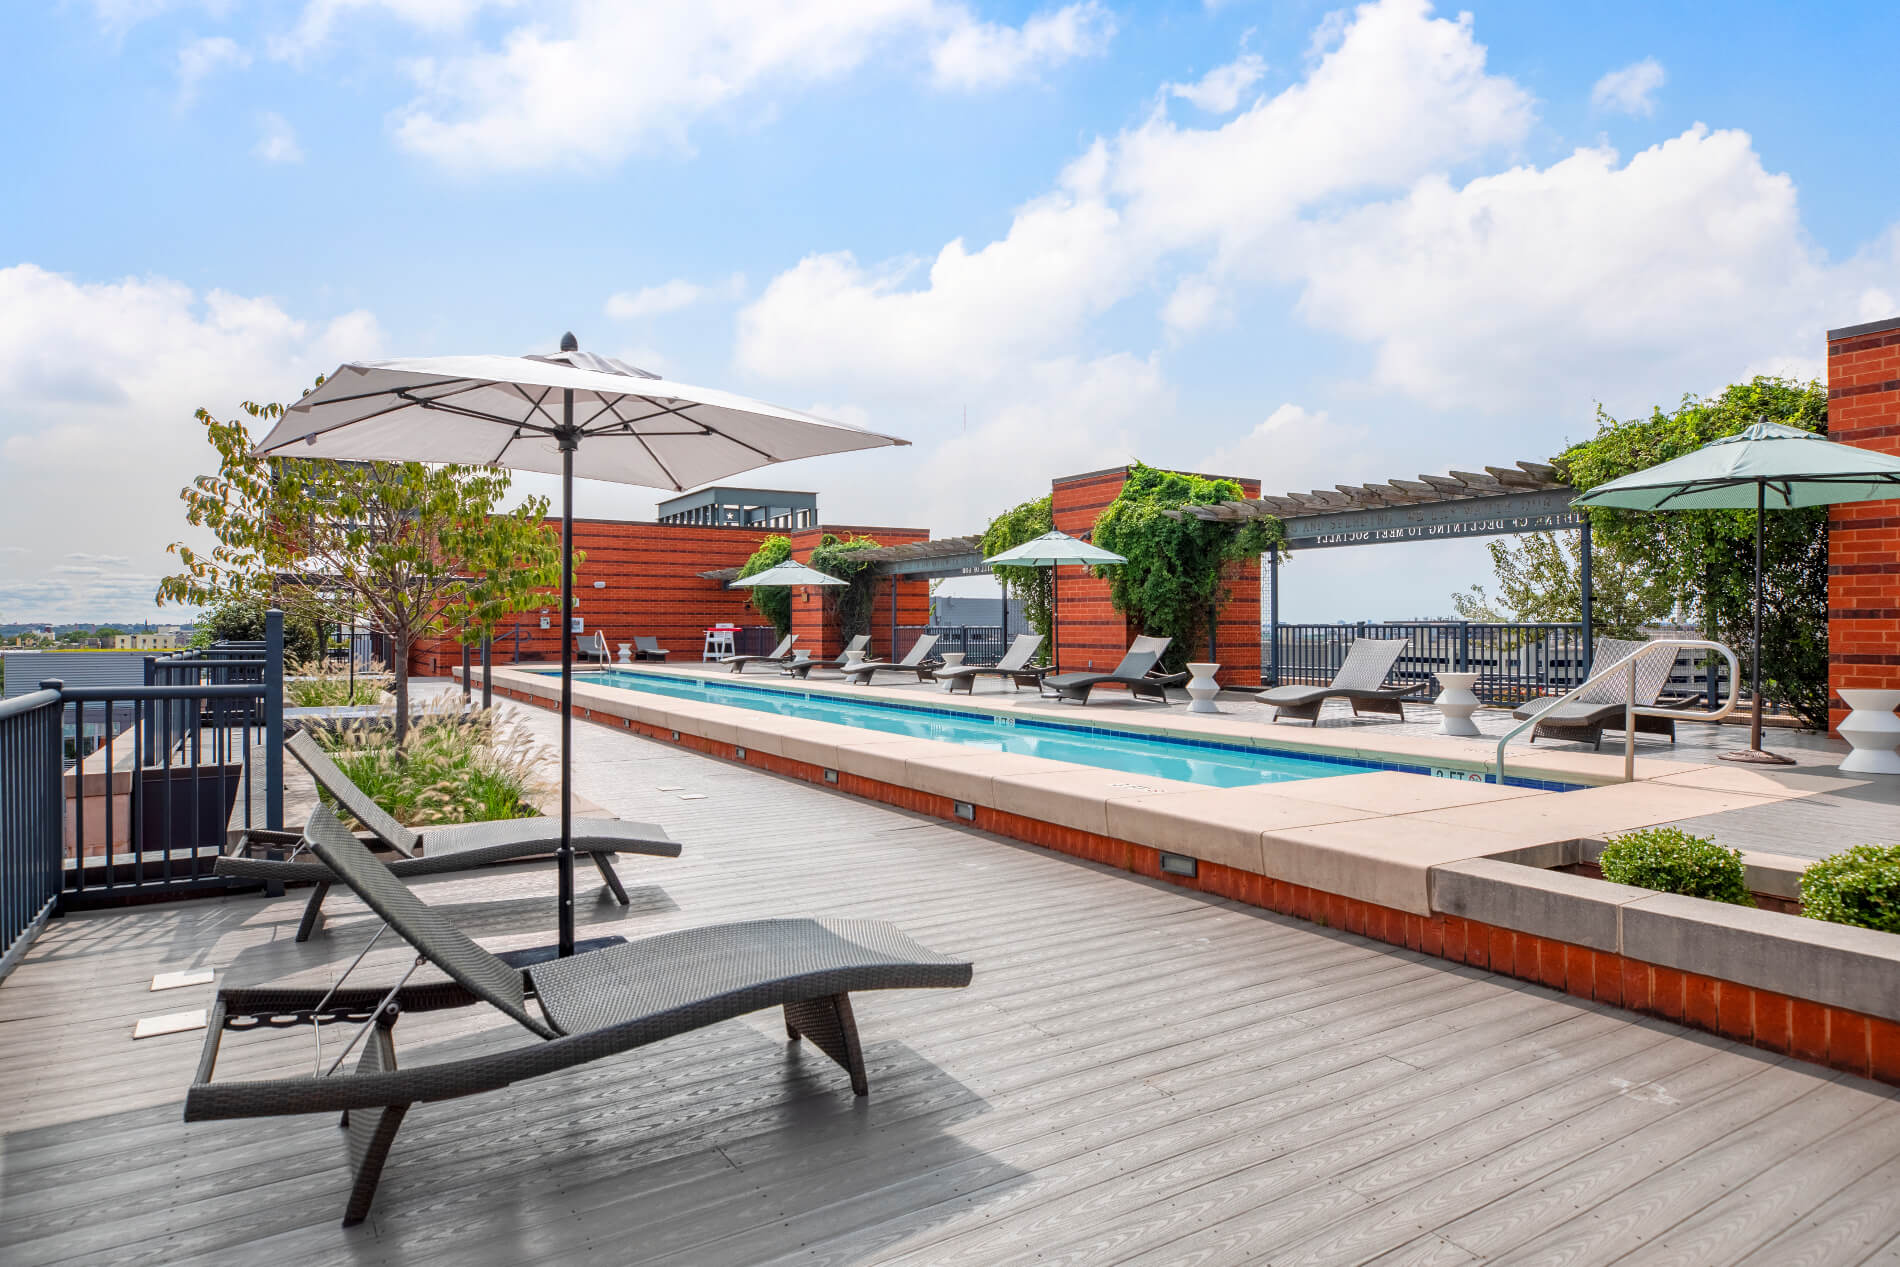 Rooftop pool with ample seating, umbrellas and growing vines